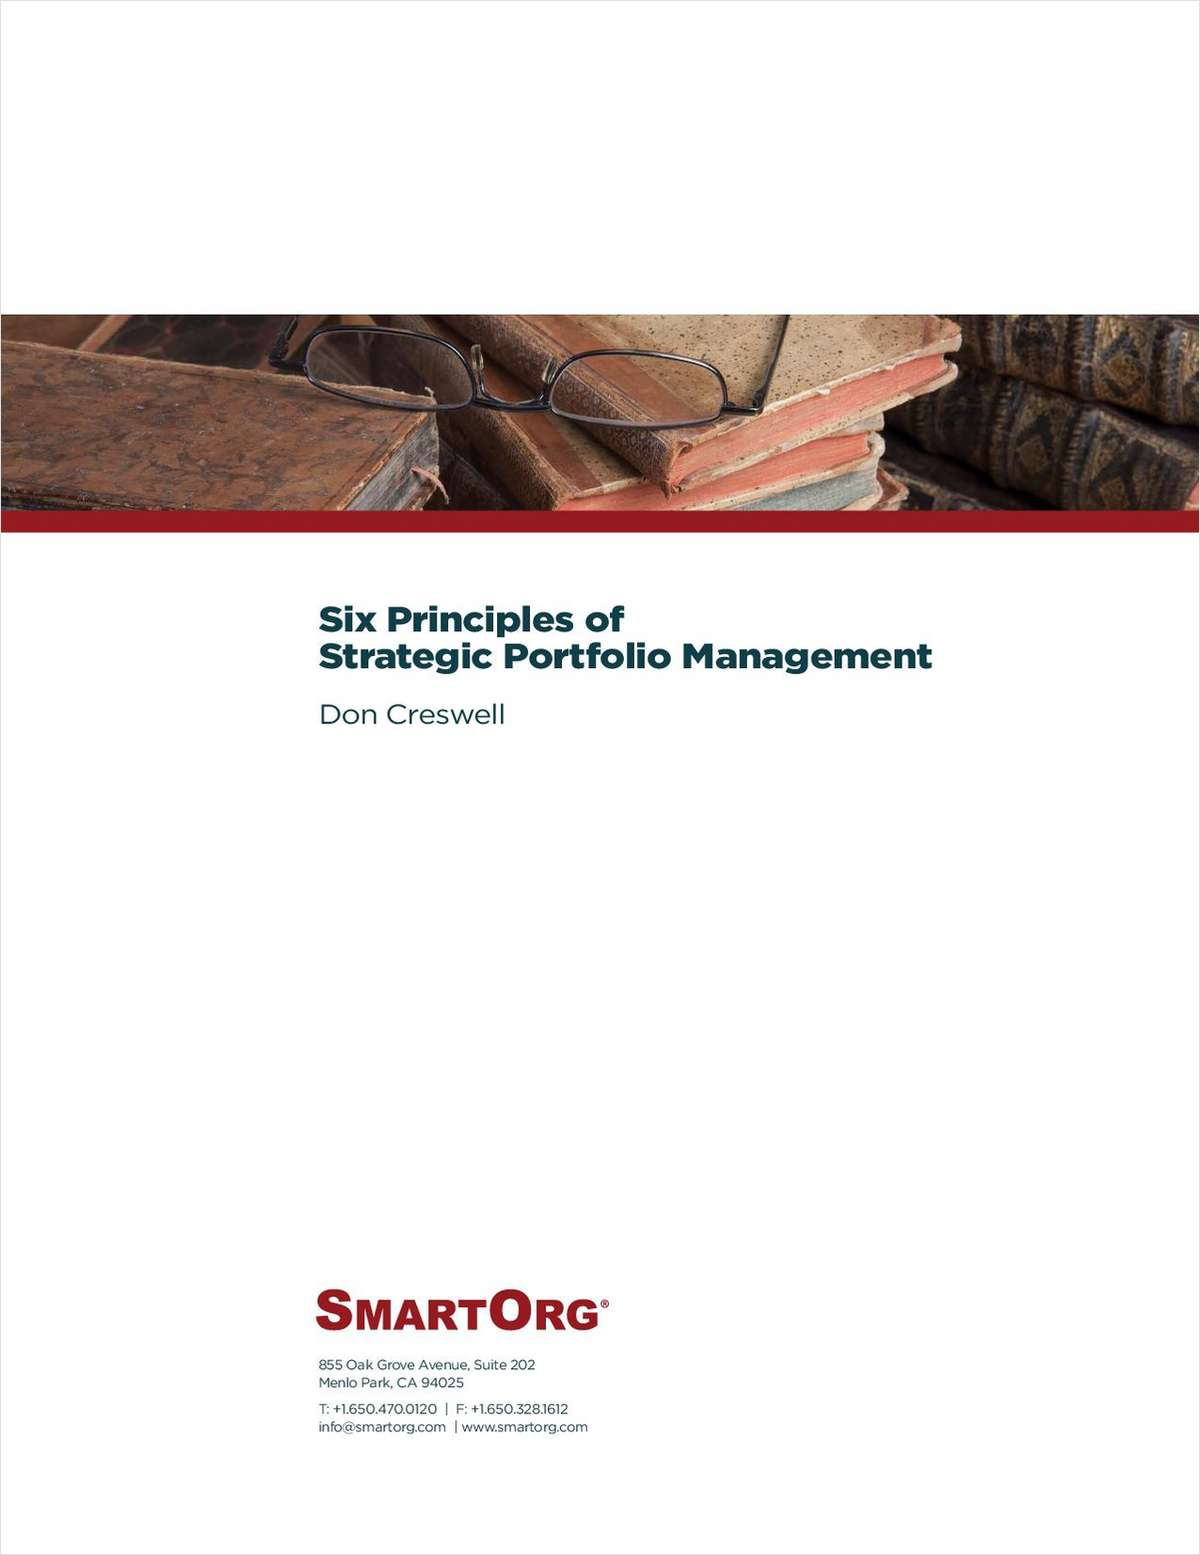 Six Principles of Strategic Portfolio Management